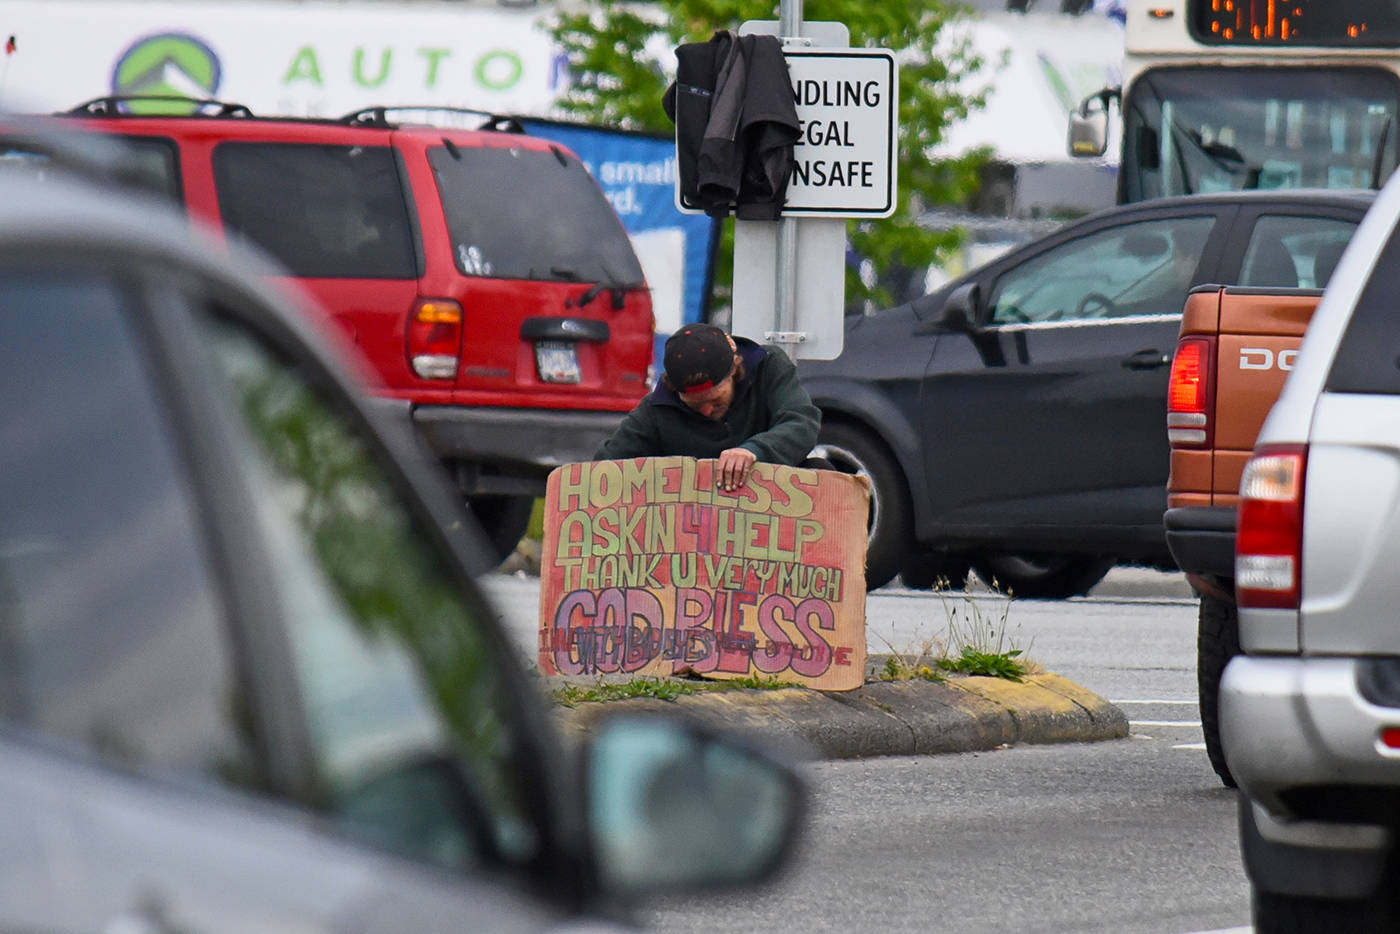 B.C. city to fine those who give cash to panhandlers, buskers